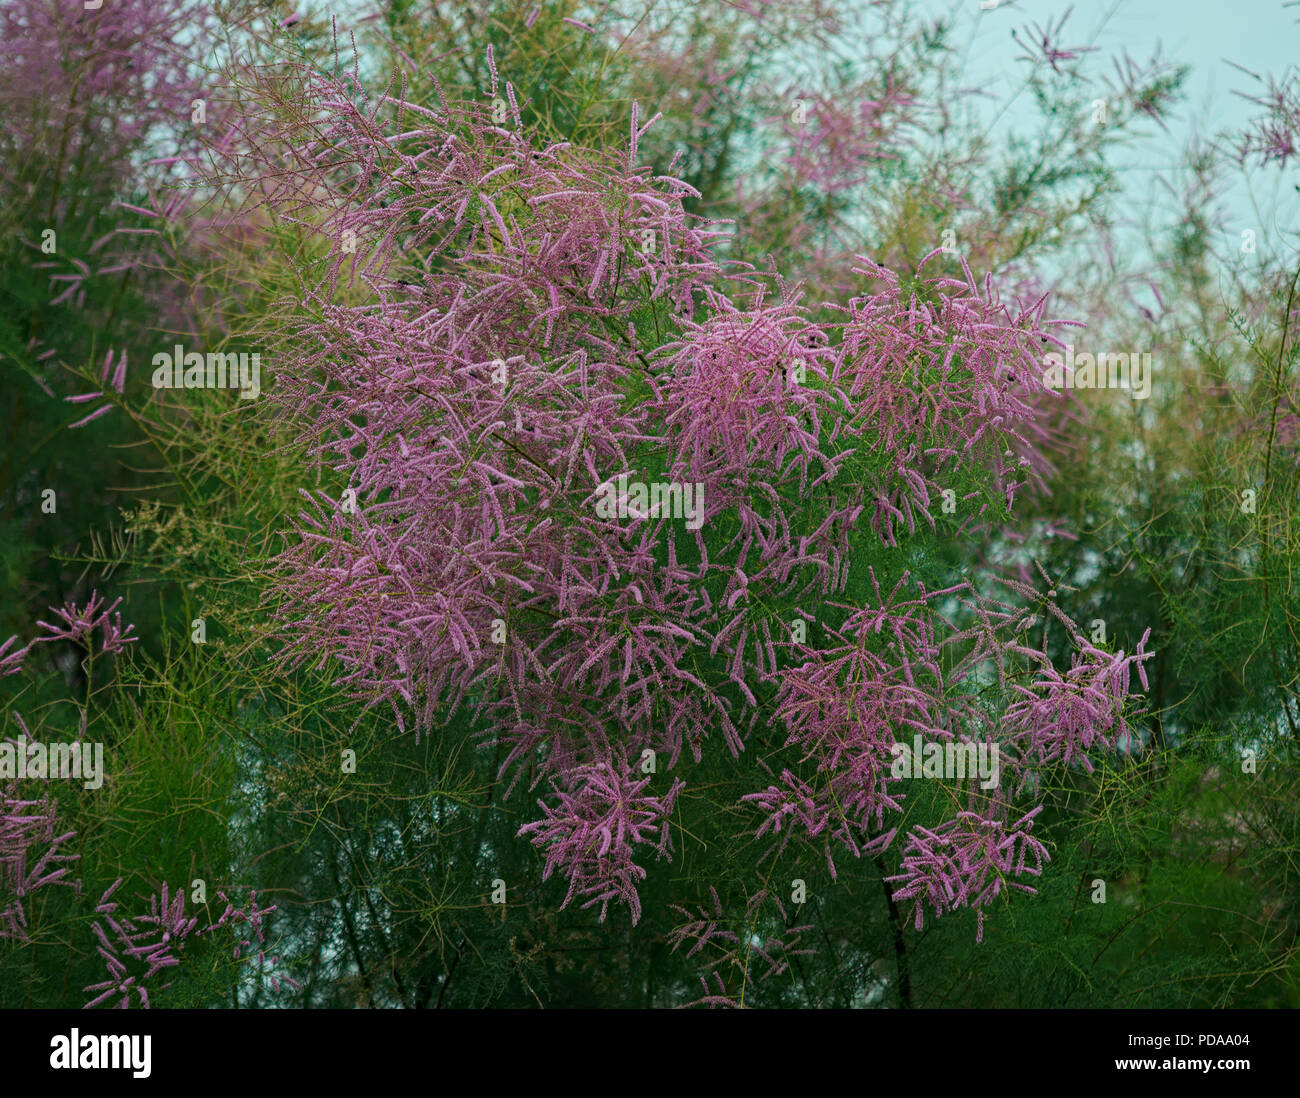 Fern like tree stock photos fern like tree stock images alamy fern like tree blooming with pink flowers stock image mightylinksfo